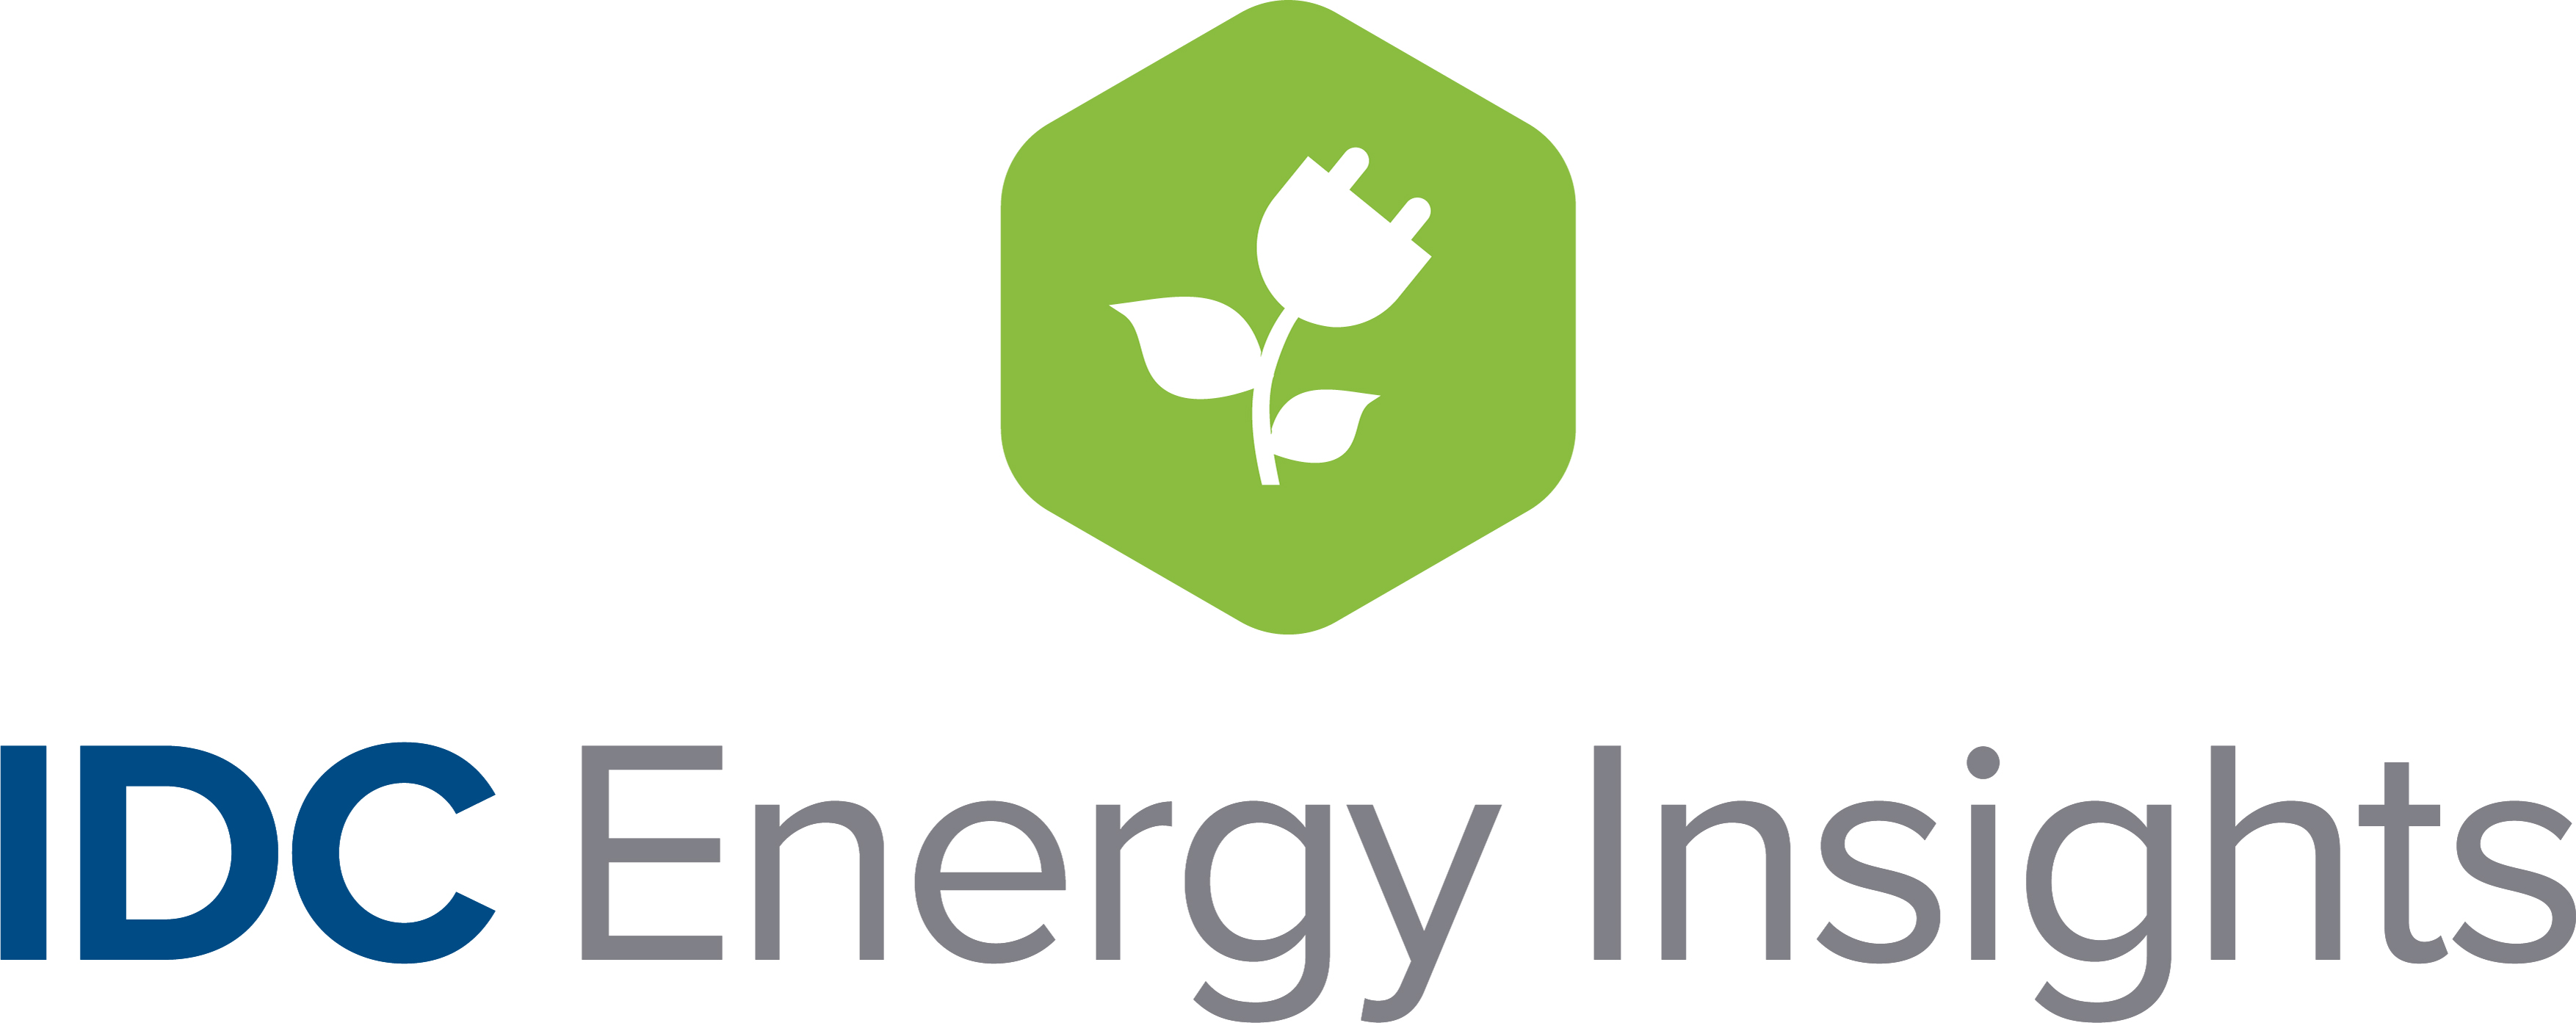 iconotype-insights-energy-fullcolor-vertical-3508x